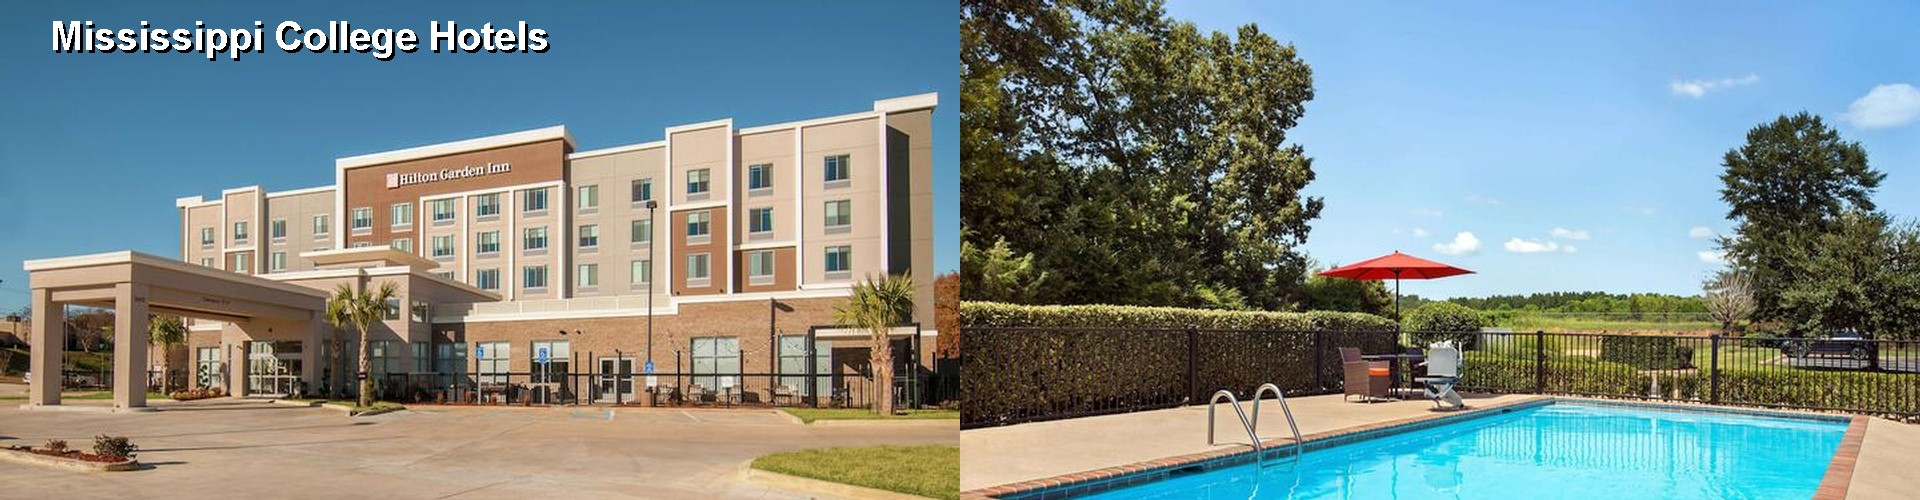 5 Best Hotels near Mississippi College